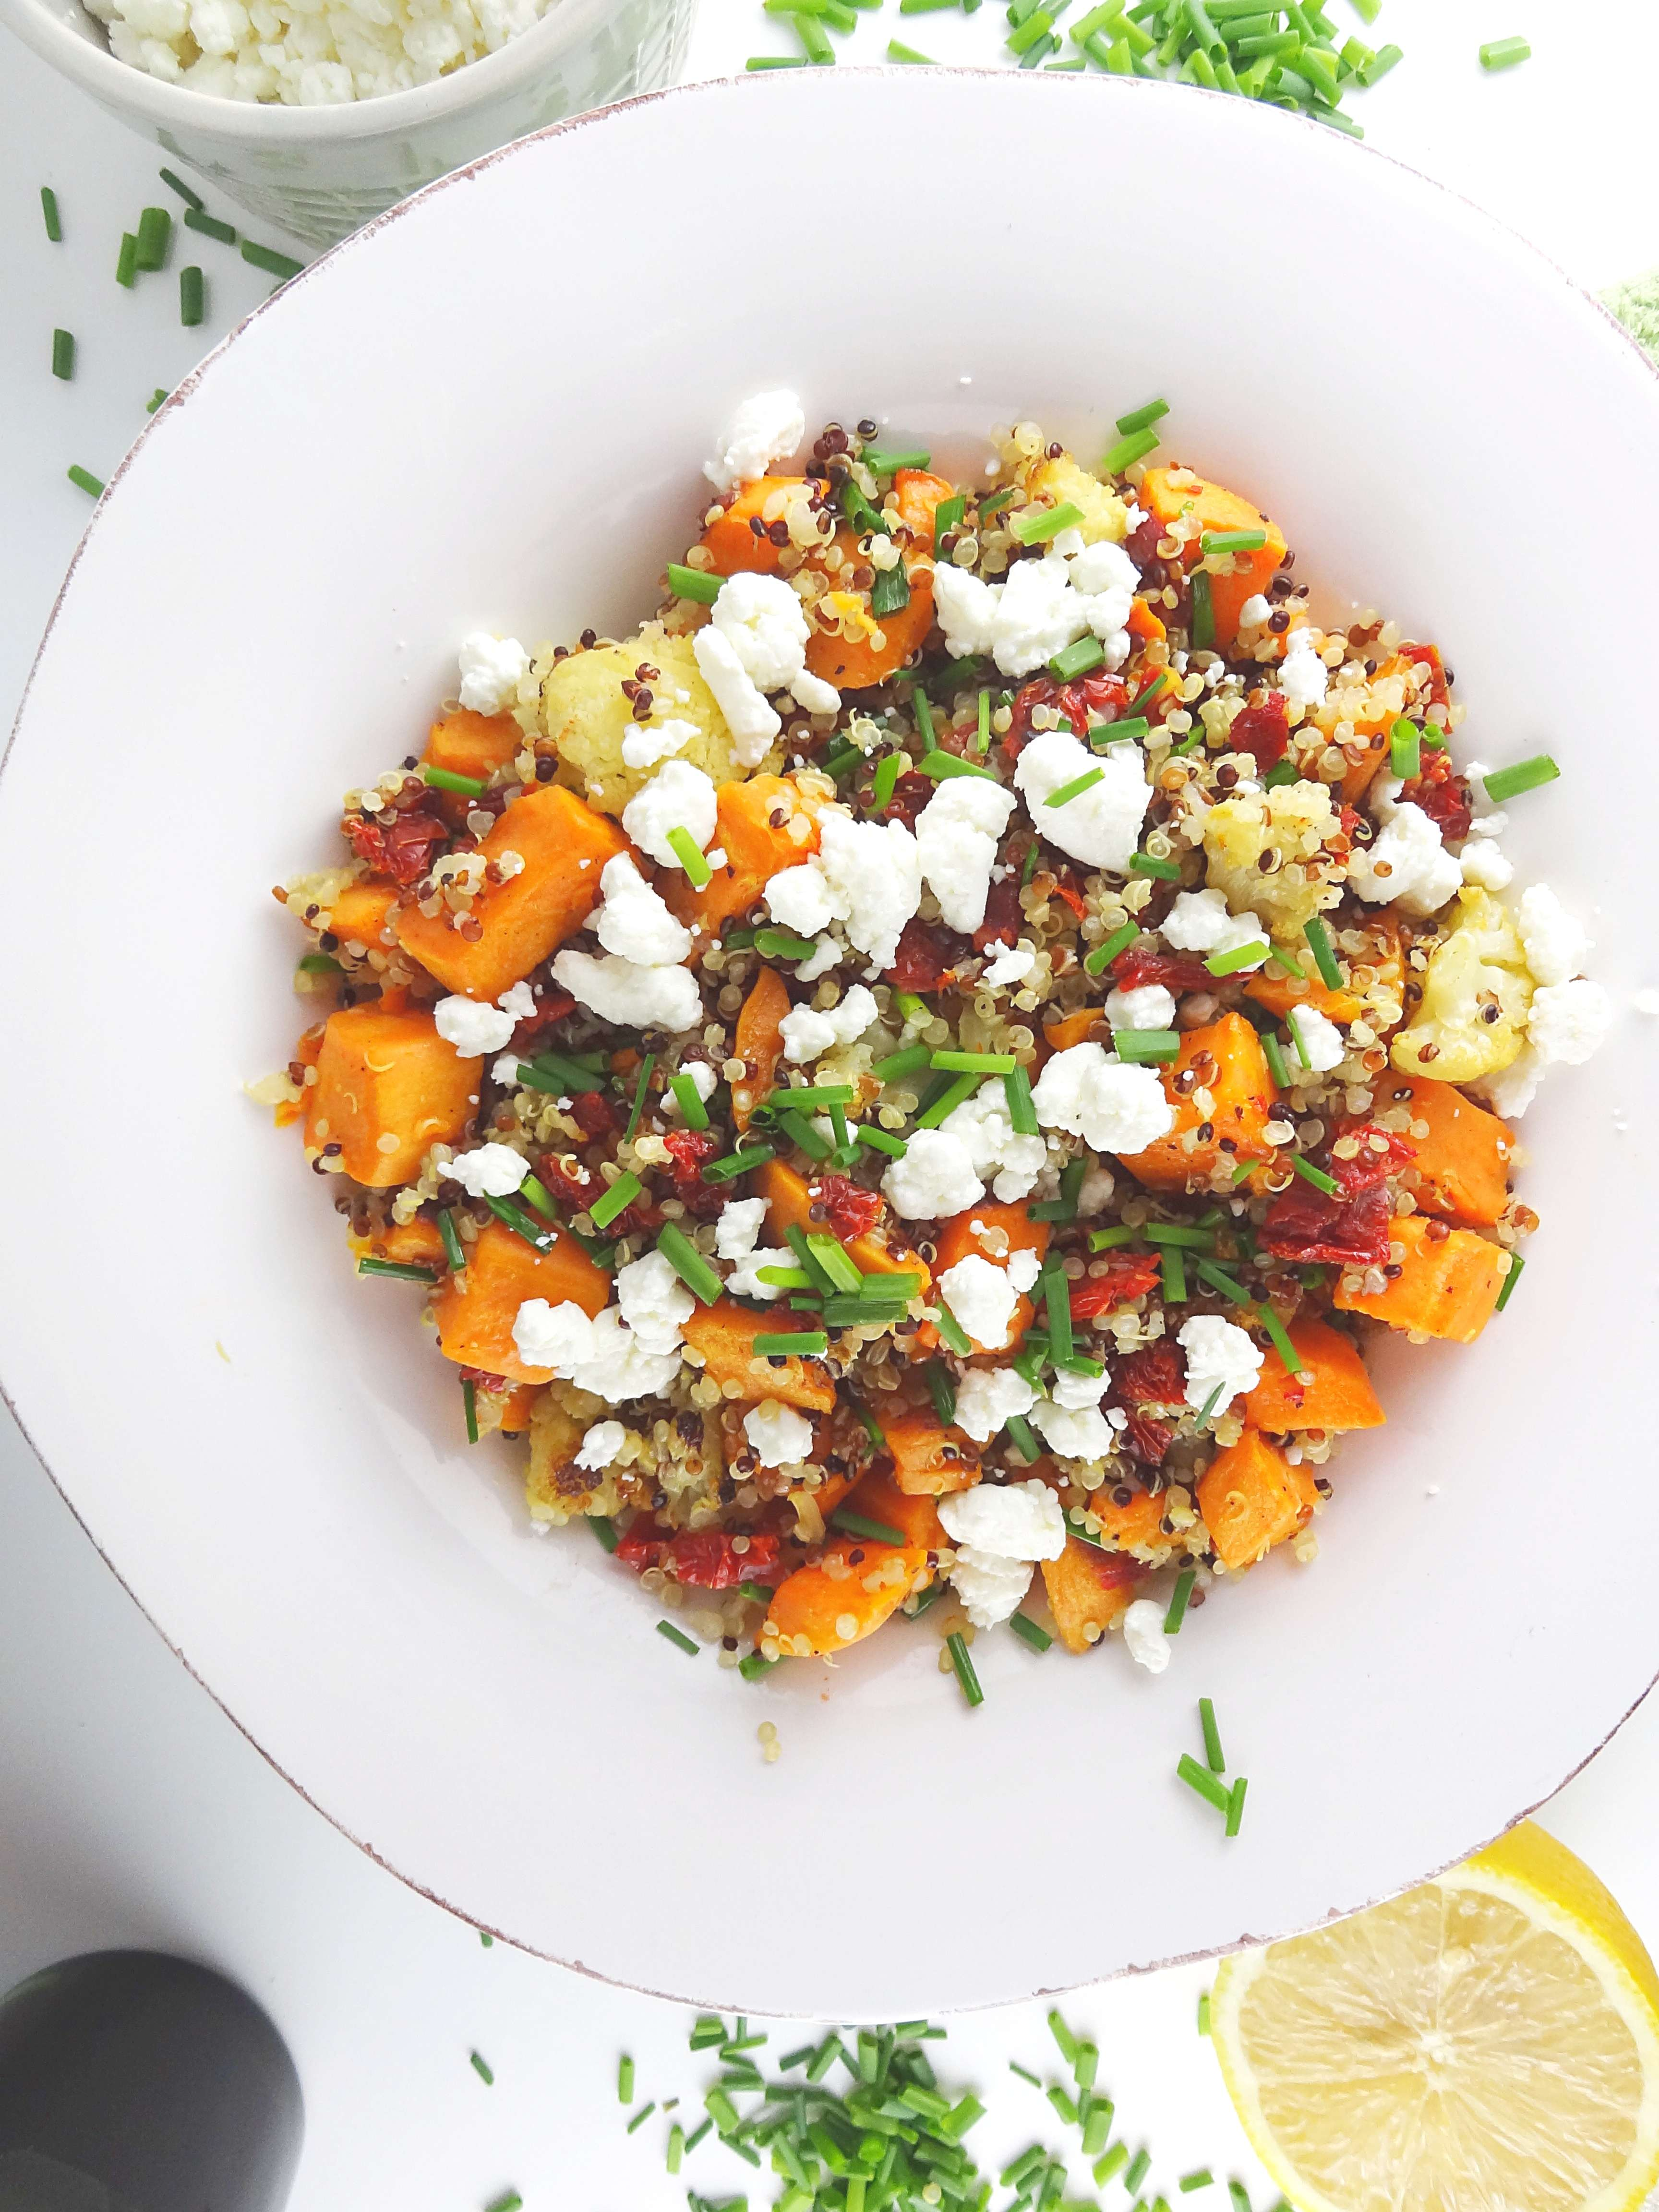 Quinoa Salad with Roasted Sweet Potatoes & Cauliflower from The Cheerful Kitchen. This super healthy side dish recipe is bursting with flavor!